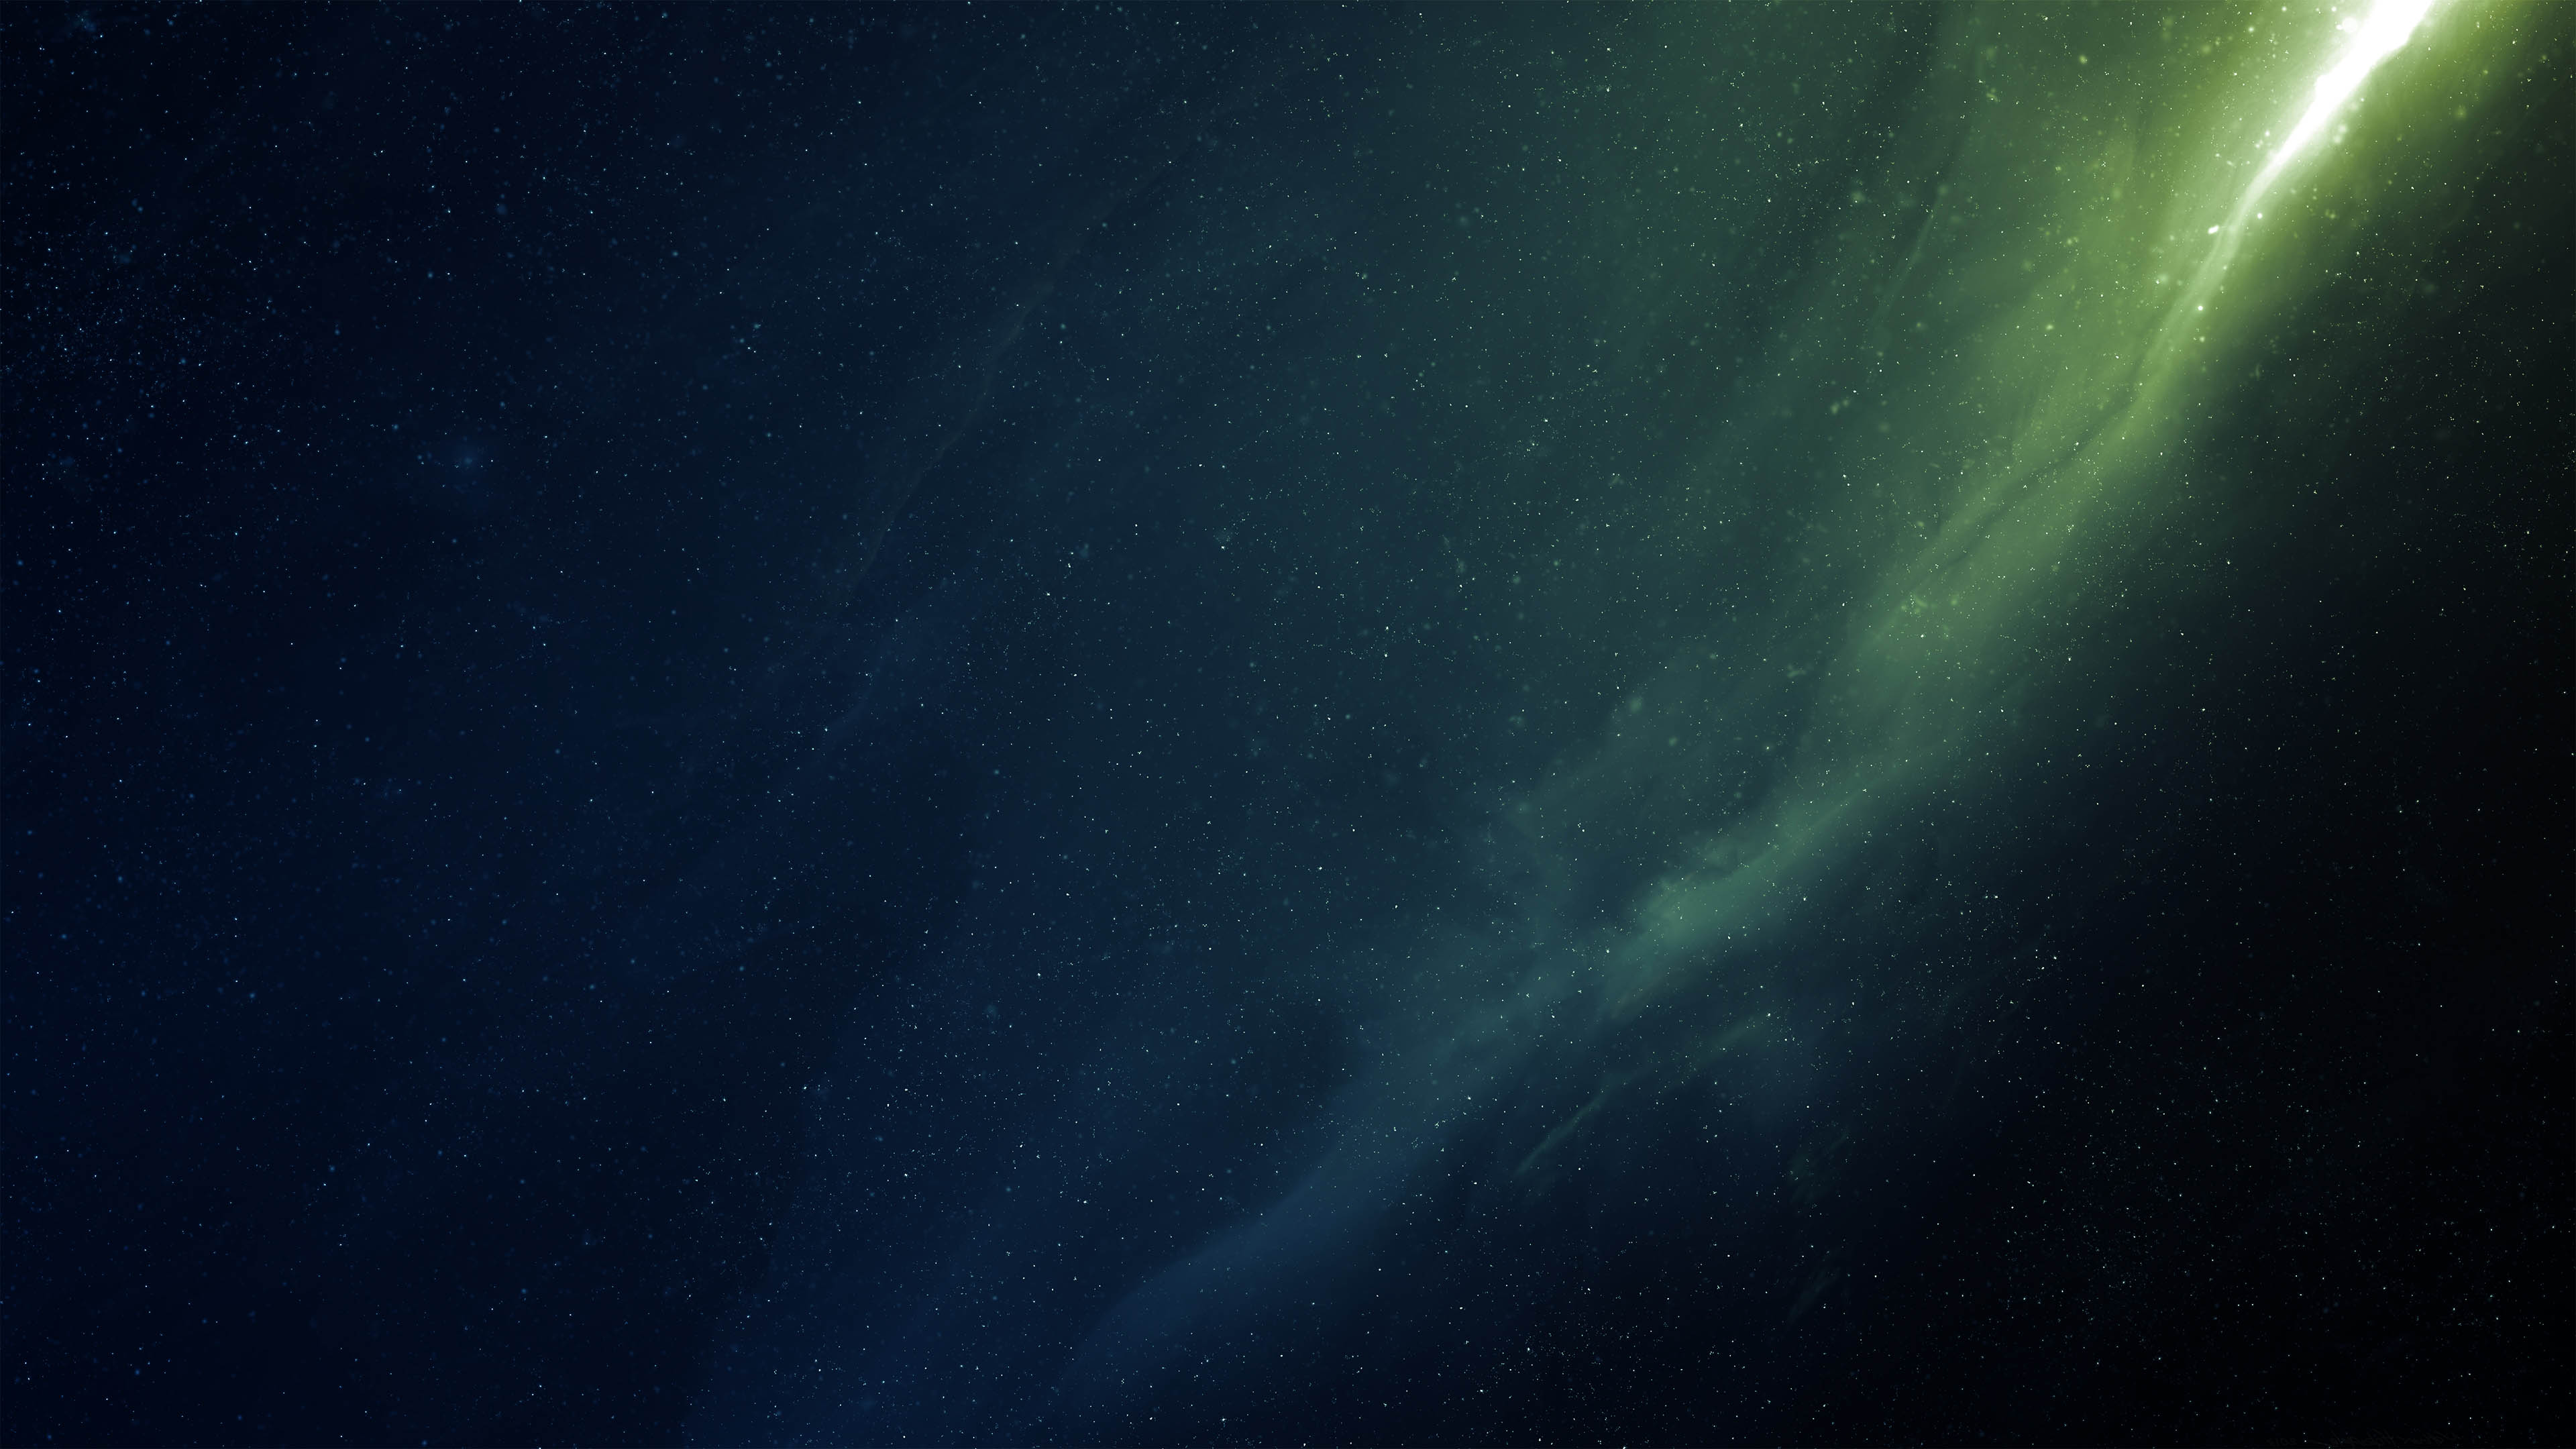 Space Wallpaper - Space Wallpaper Dark , HD Wallpaper & Backgrounds